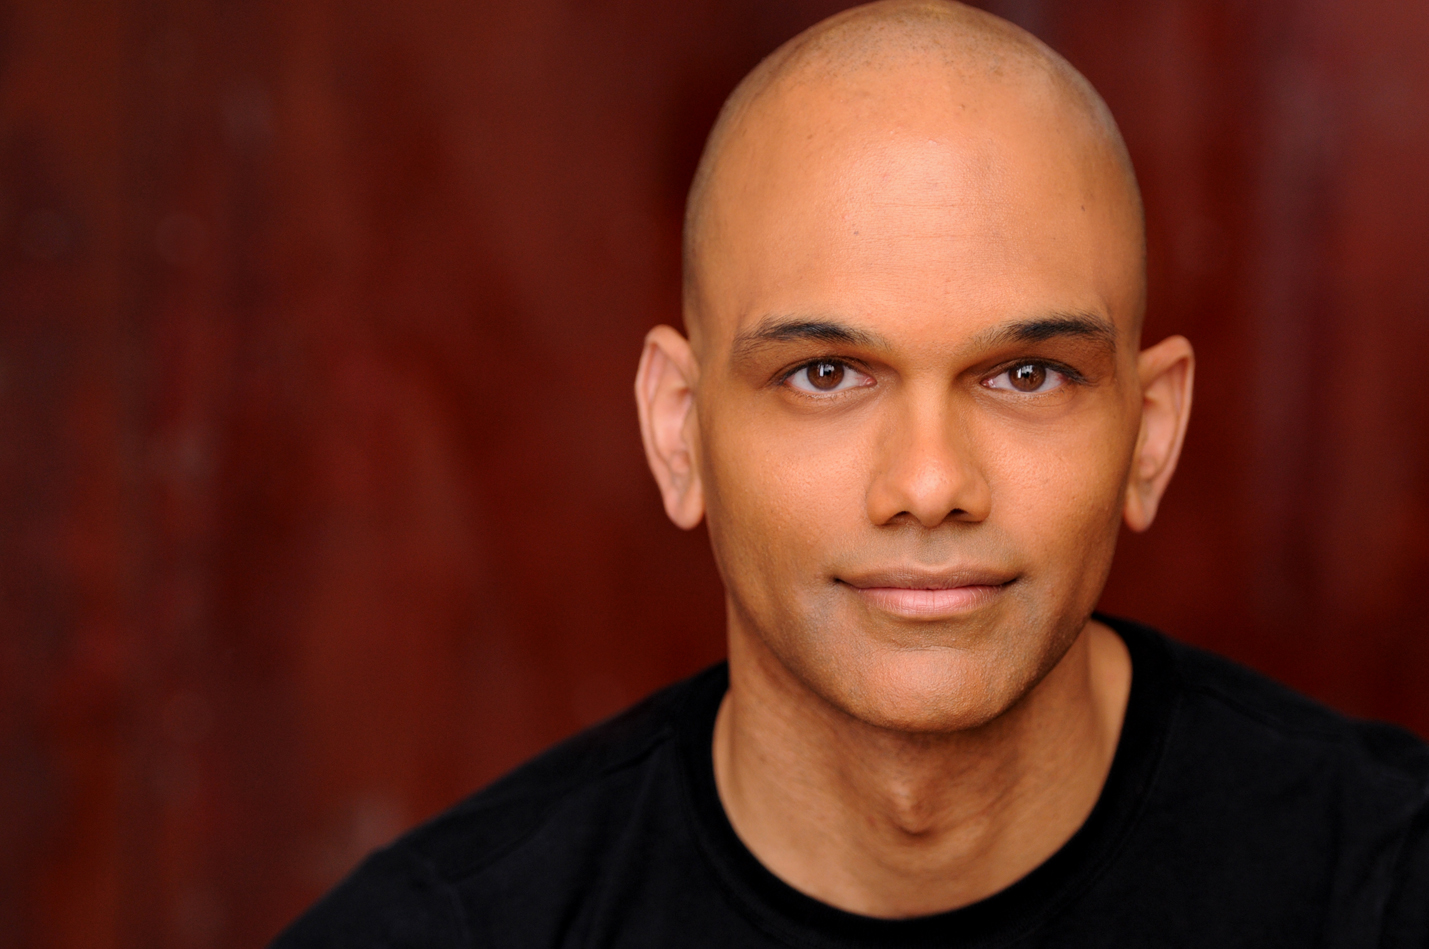 Michael Mohammed, actor